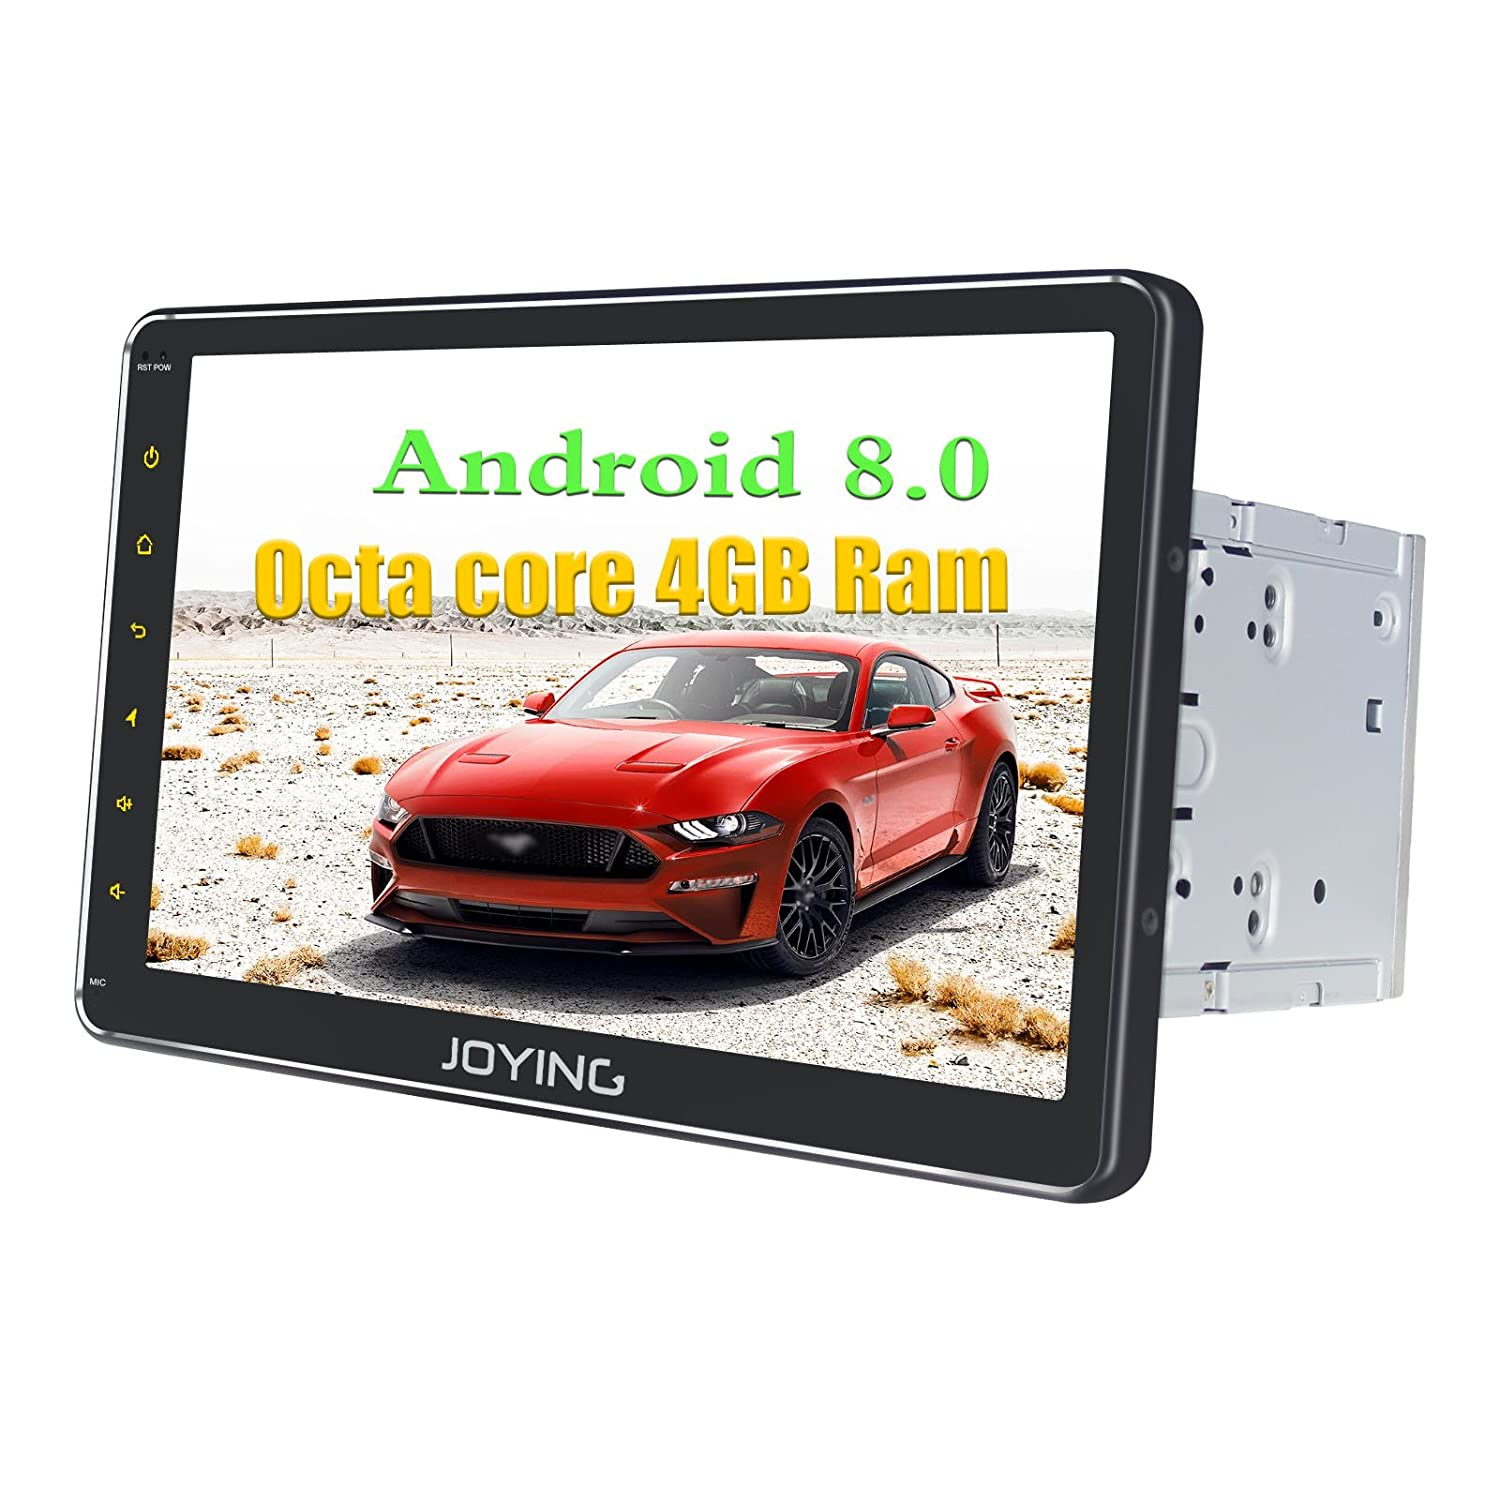 Joying 10.1 Car Radio Android 8.0 PX5 Octa Core 4GB + 64GB GPS Navigation  Double Din with iPhone Zlink & Android Auto - Support RCA Video & Subwoofer  ...